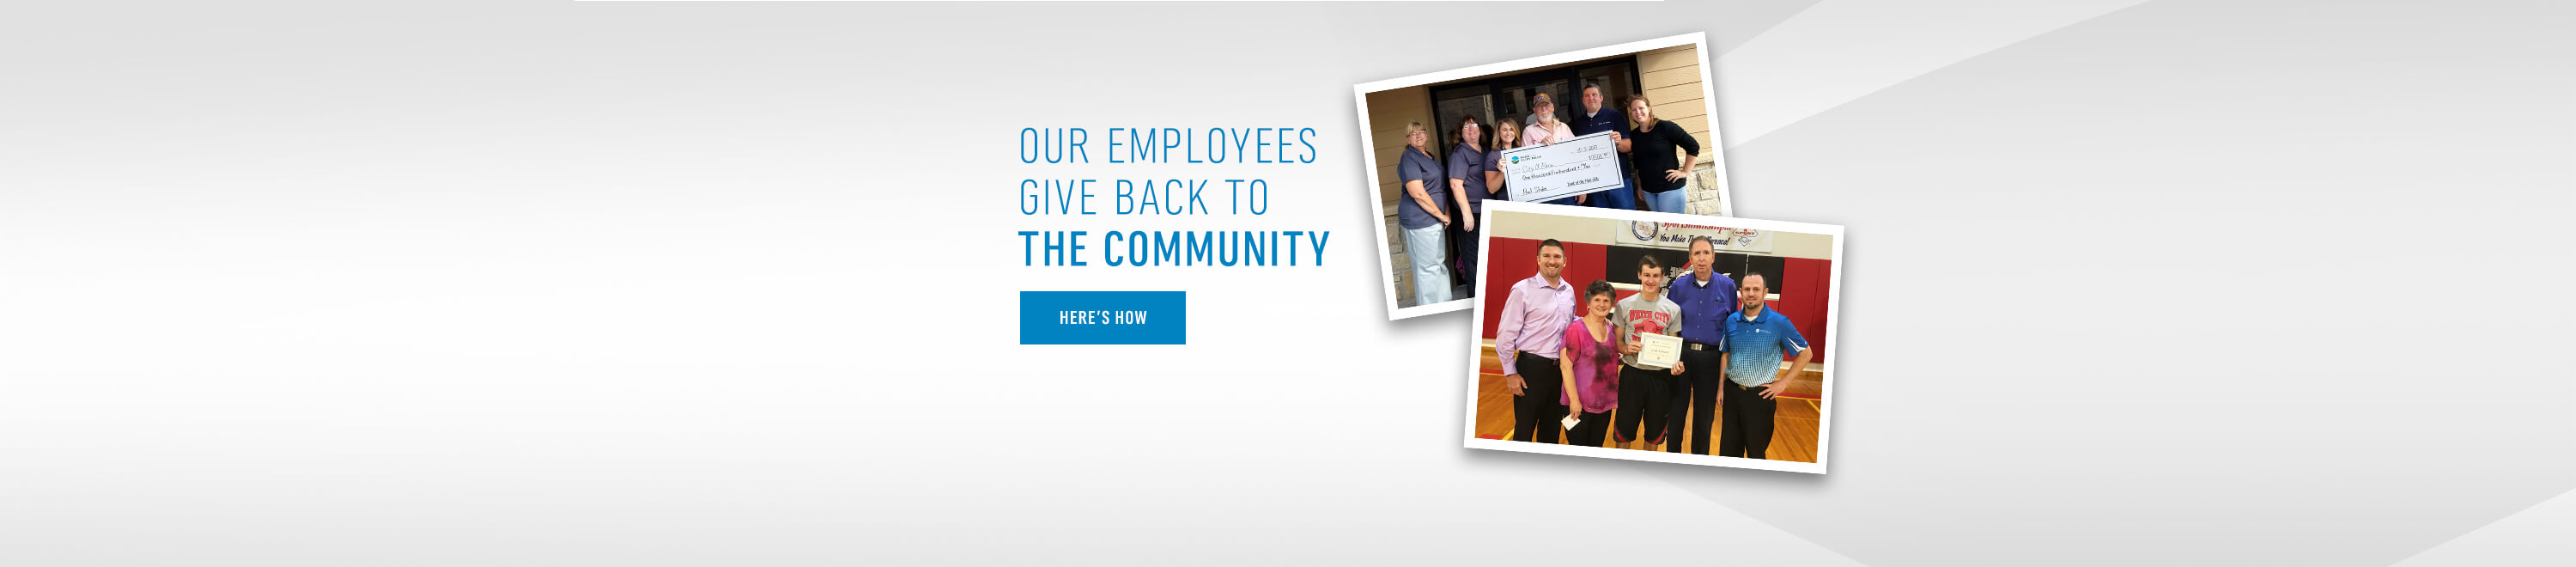 Our Employees Give Back to the Community